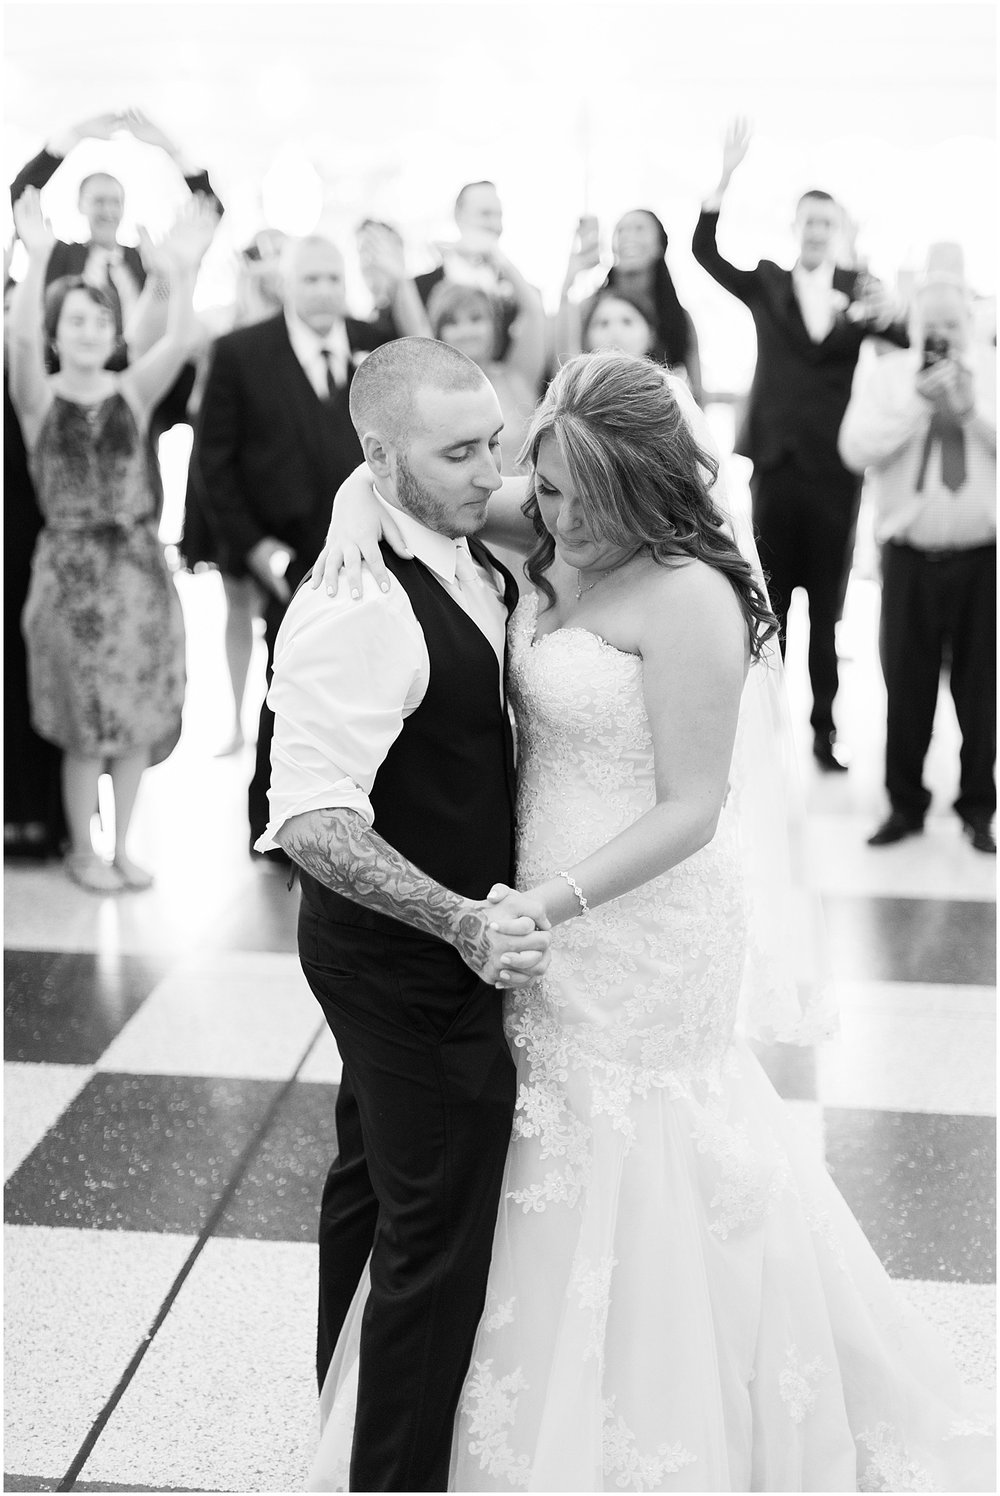 Bride and Groom First Dance by Alyssa Parker Photography